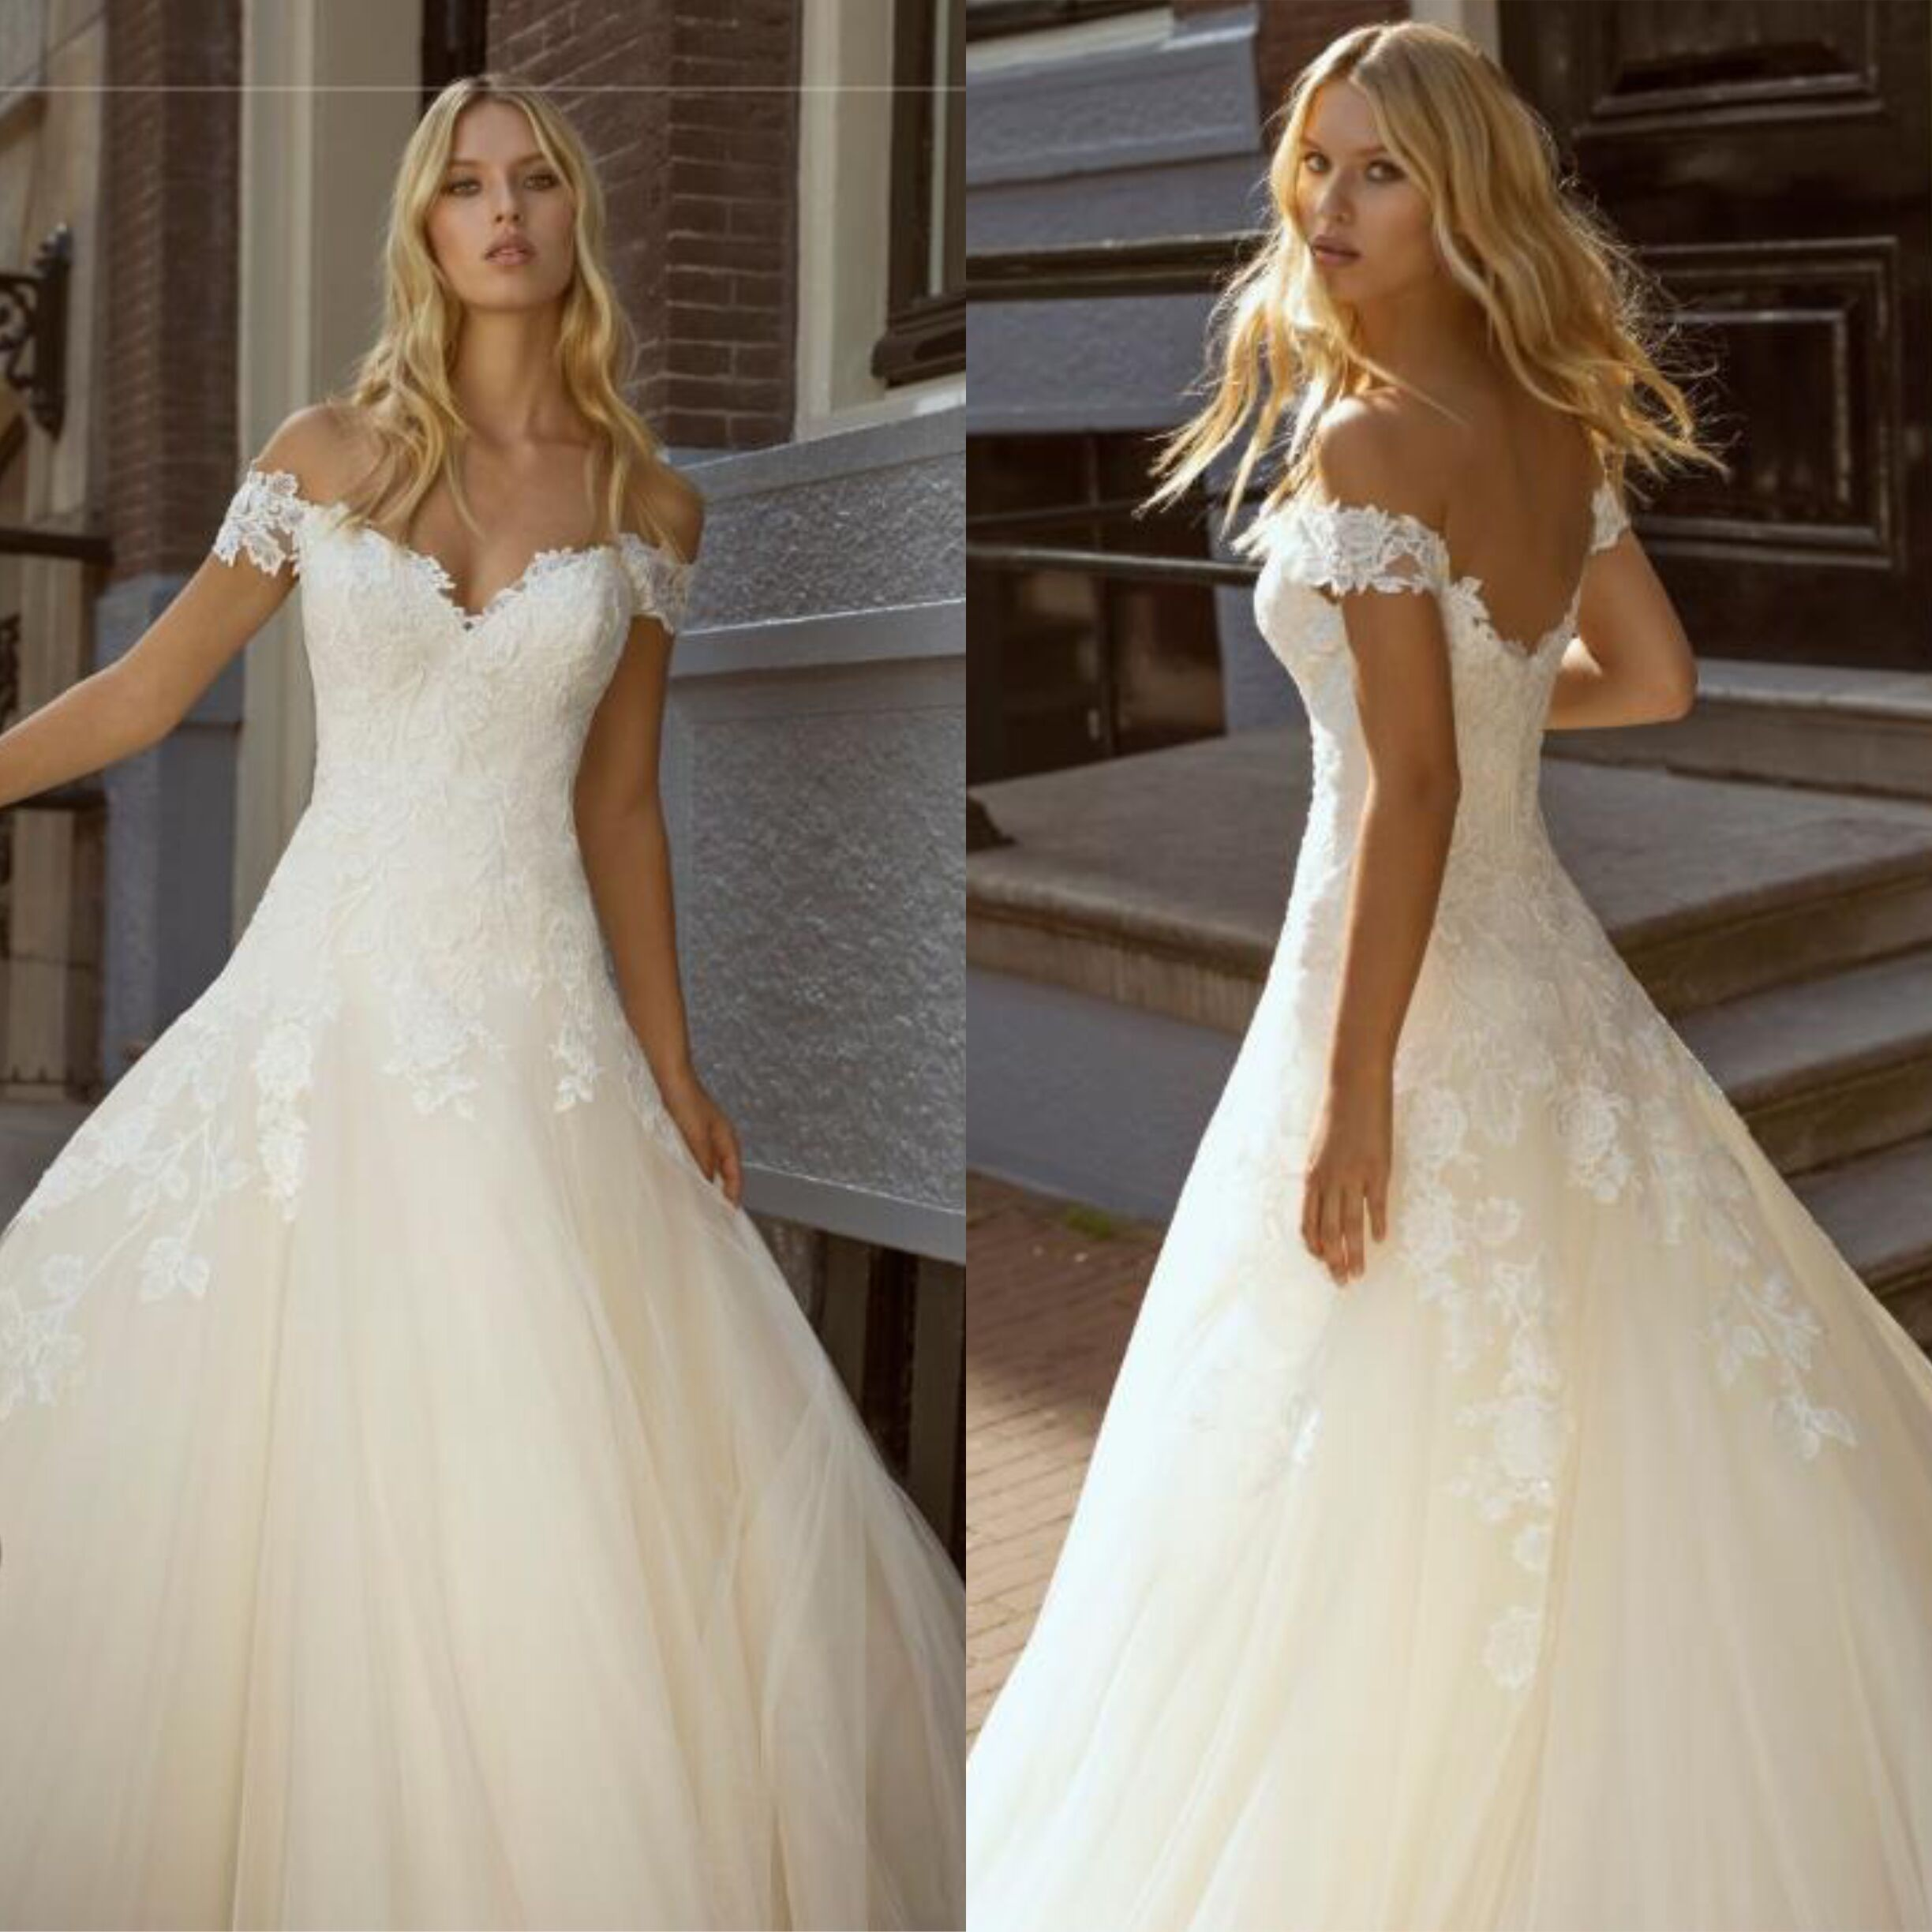 Chamgne Wedding Dress A-Line Cap Sleeve With Appliques Custom Made Bridal Gowns  Robe De Mariage